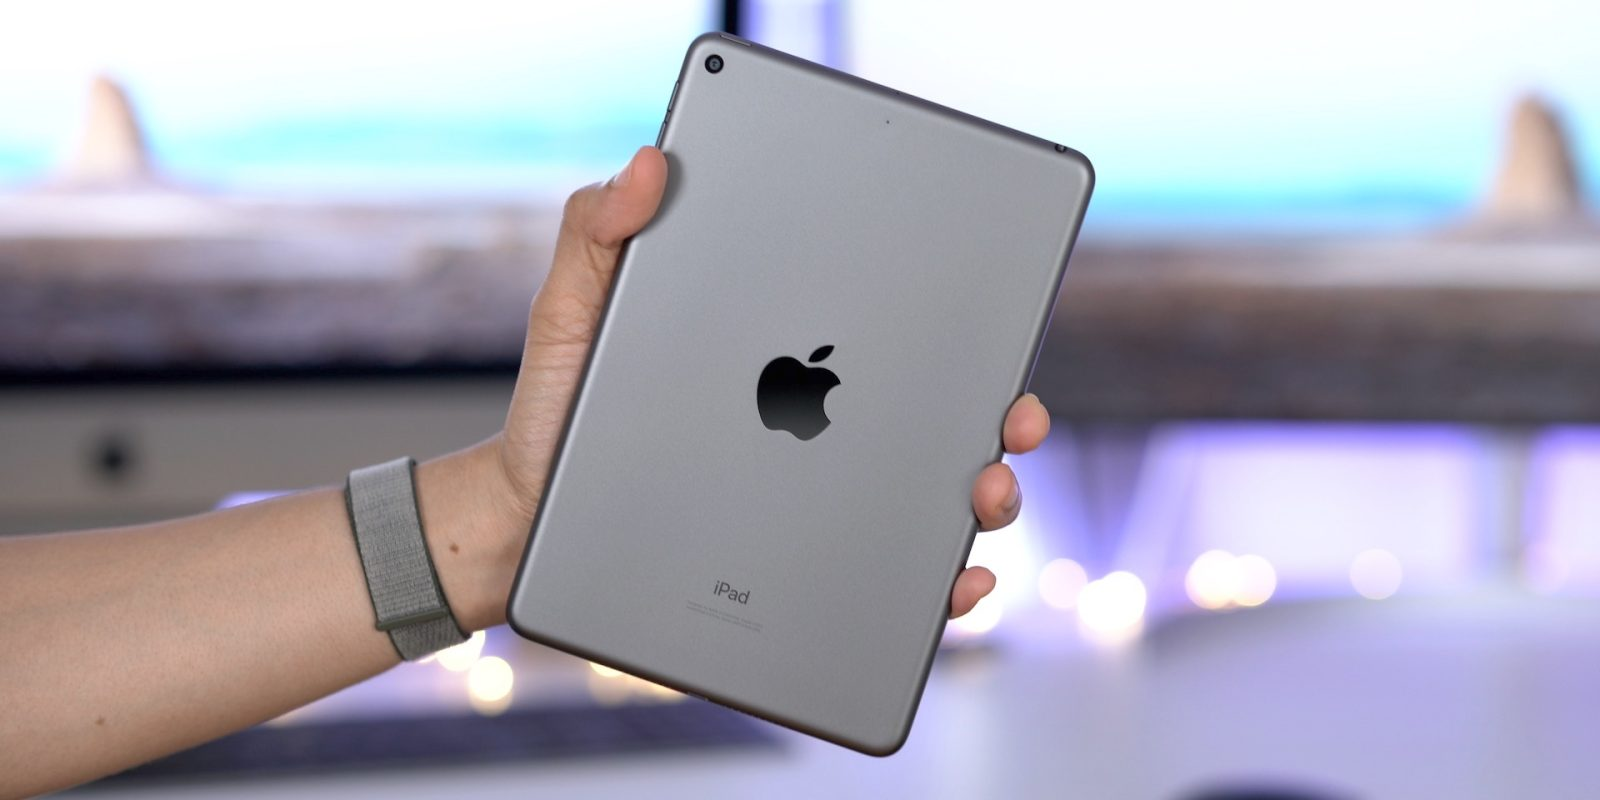 iPad mini 5 deals, SanDisk storage sale, and elago's AirPods case are in Tuesday's best offers